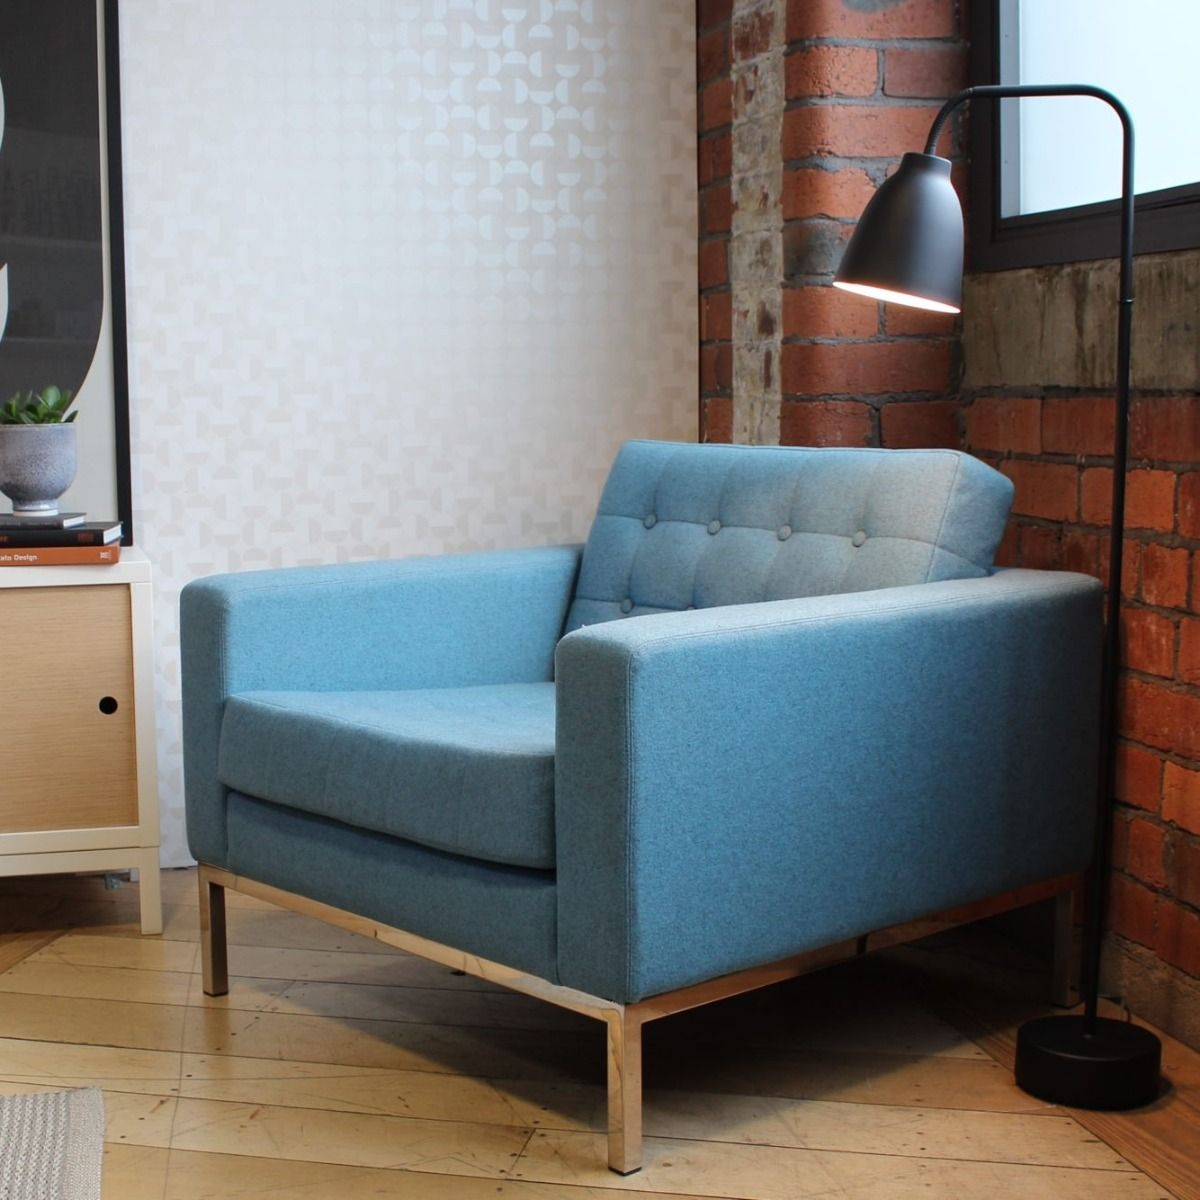 Robin Day Club armchair in blue fabric next to tv cabinet